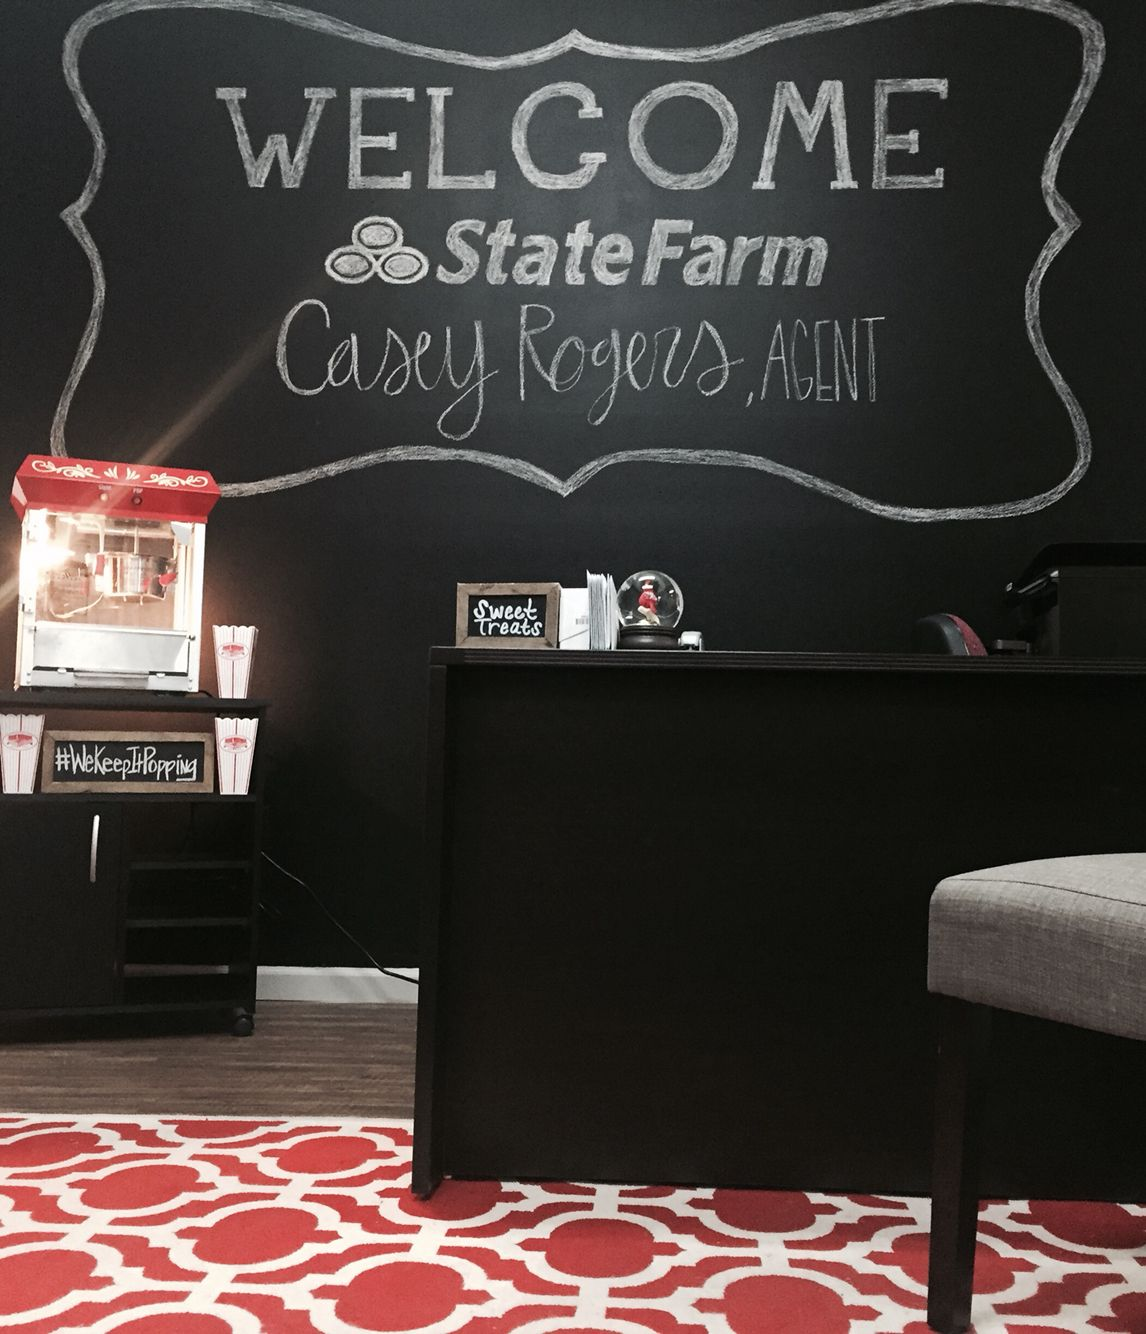 State Farm Auto Quote Adorable Chalkboard Wall  State Farm Wwwchoosecasey #wekeepitpopping